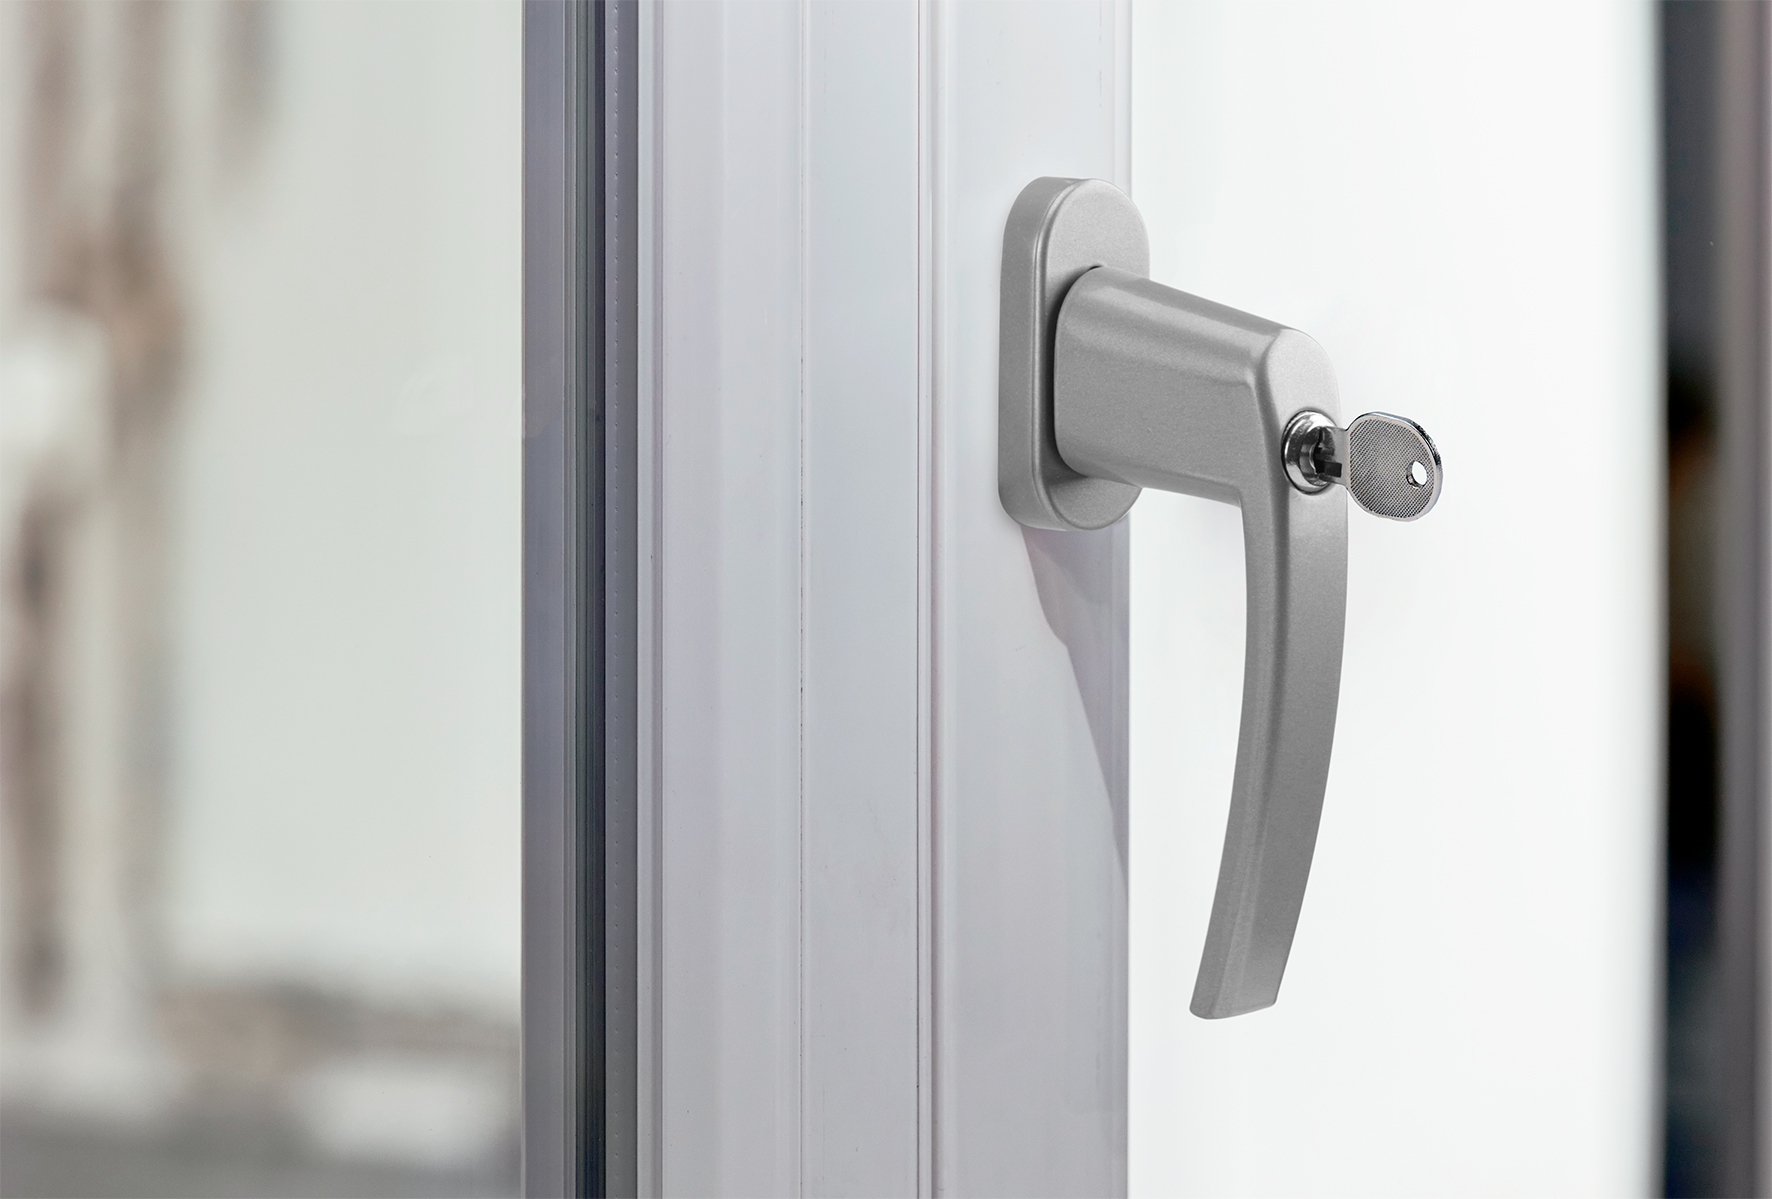 Fgs Security window handle with lock fgs 100 | olympia business systems